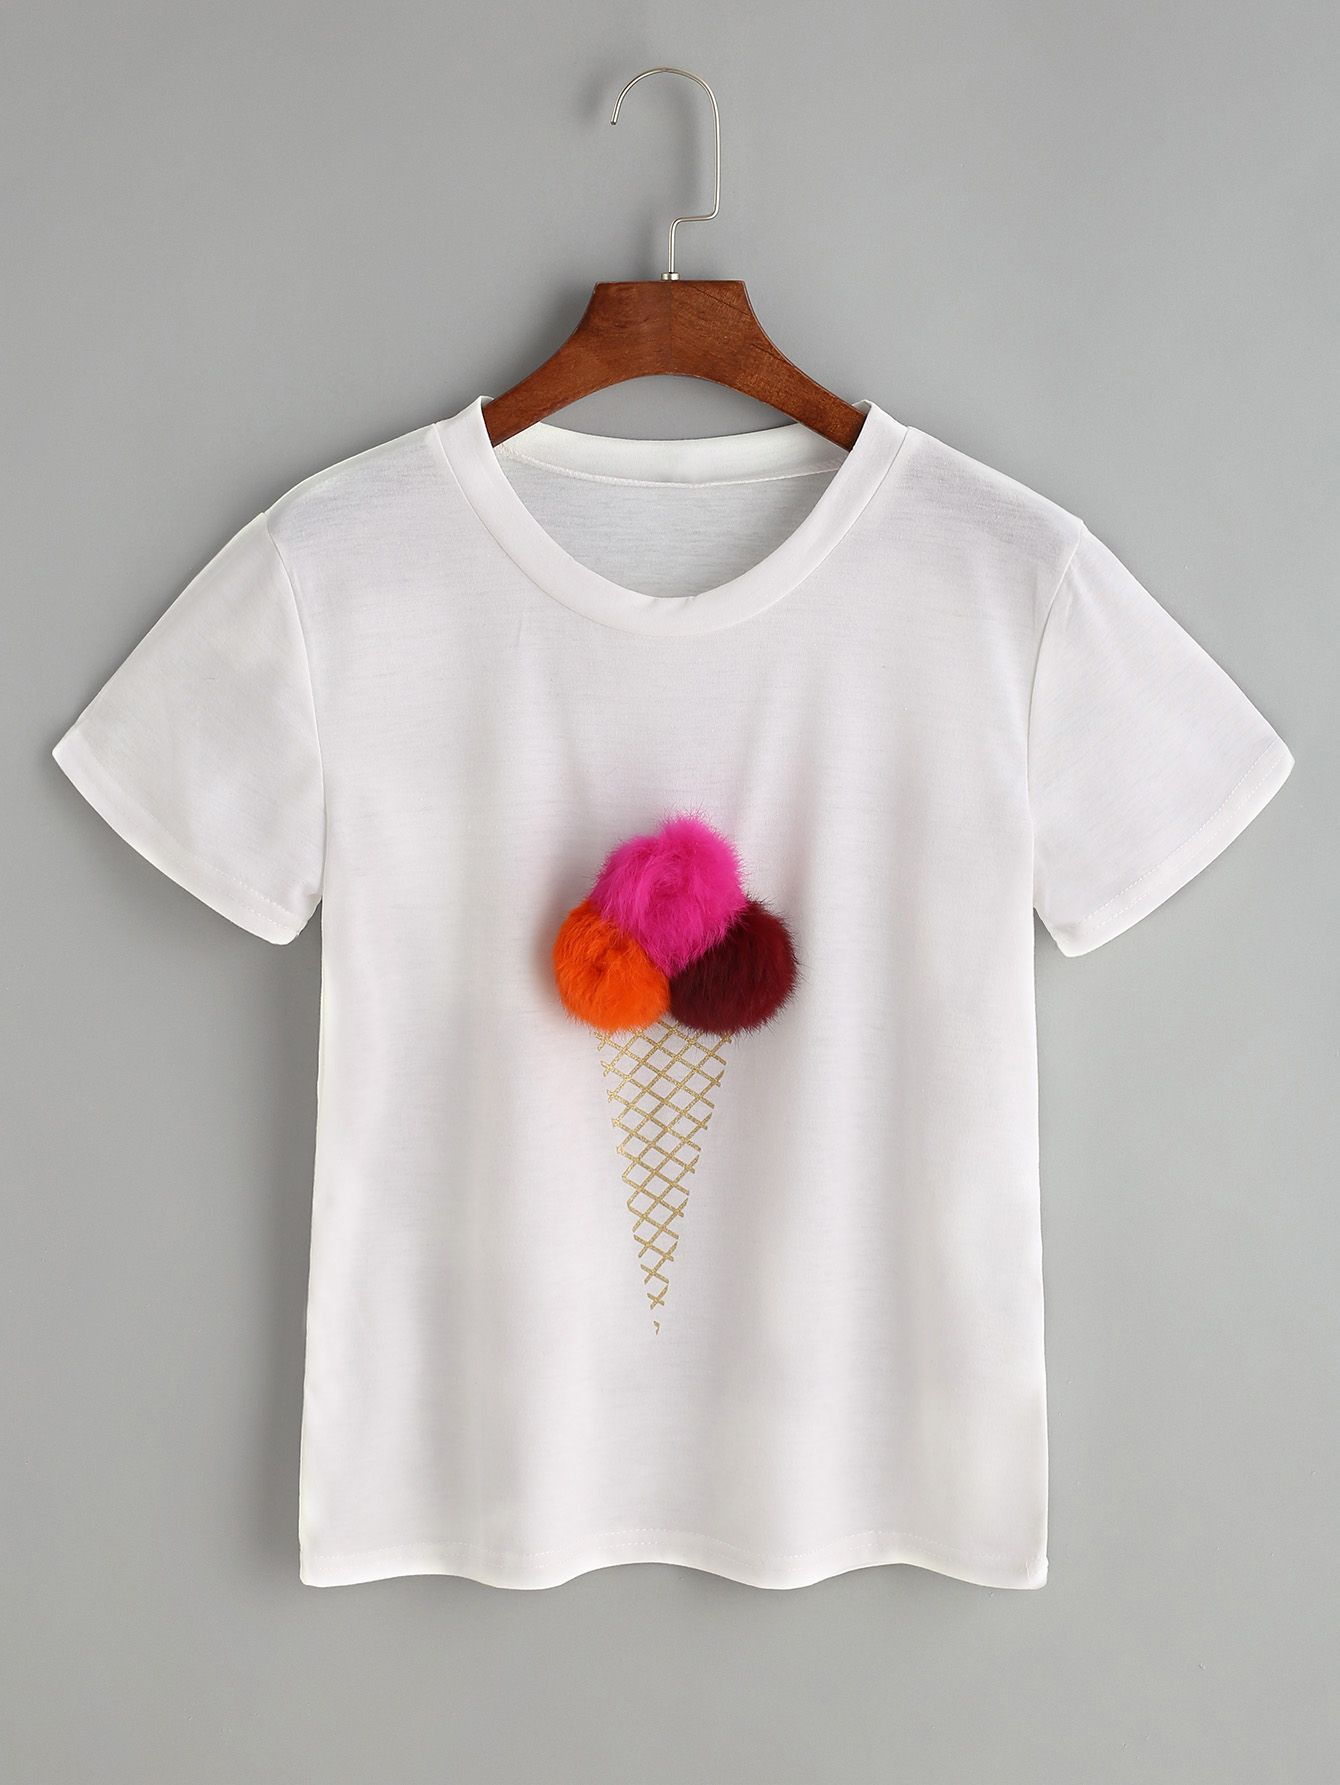 528902106f Shop White Ice Cream Print Pom Pom T-shirt online. SheIn offers White Ice  Cream Print Pom Pom T-shirt & more to fit your fashionable needs.